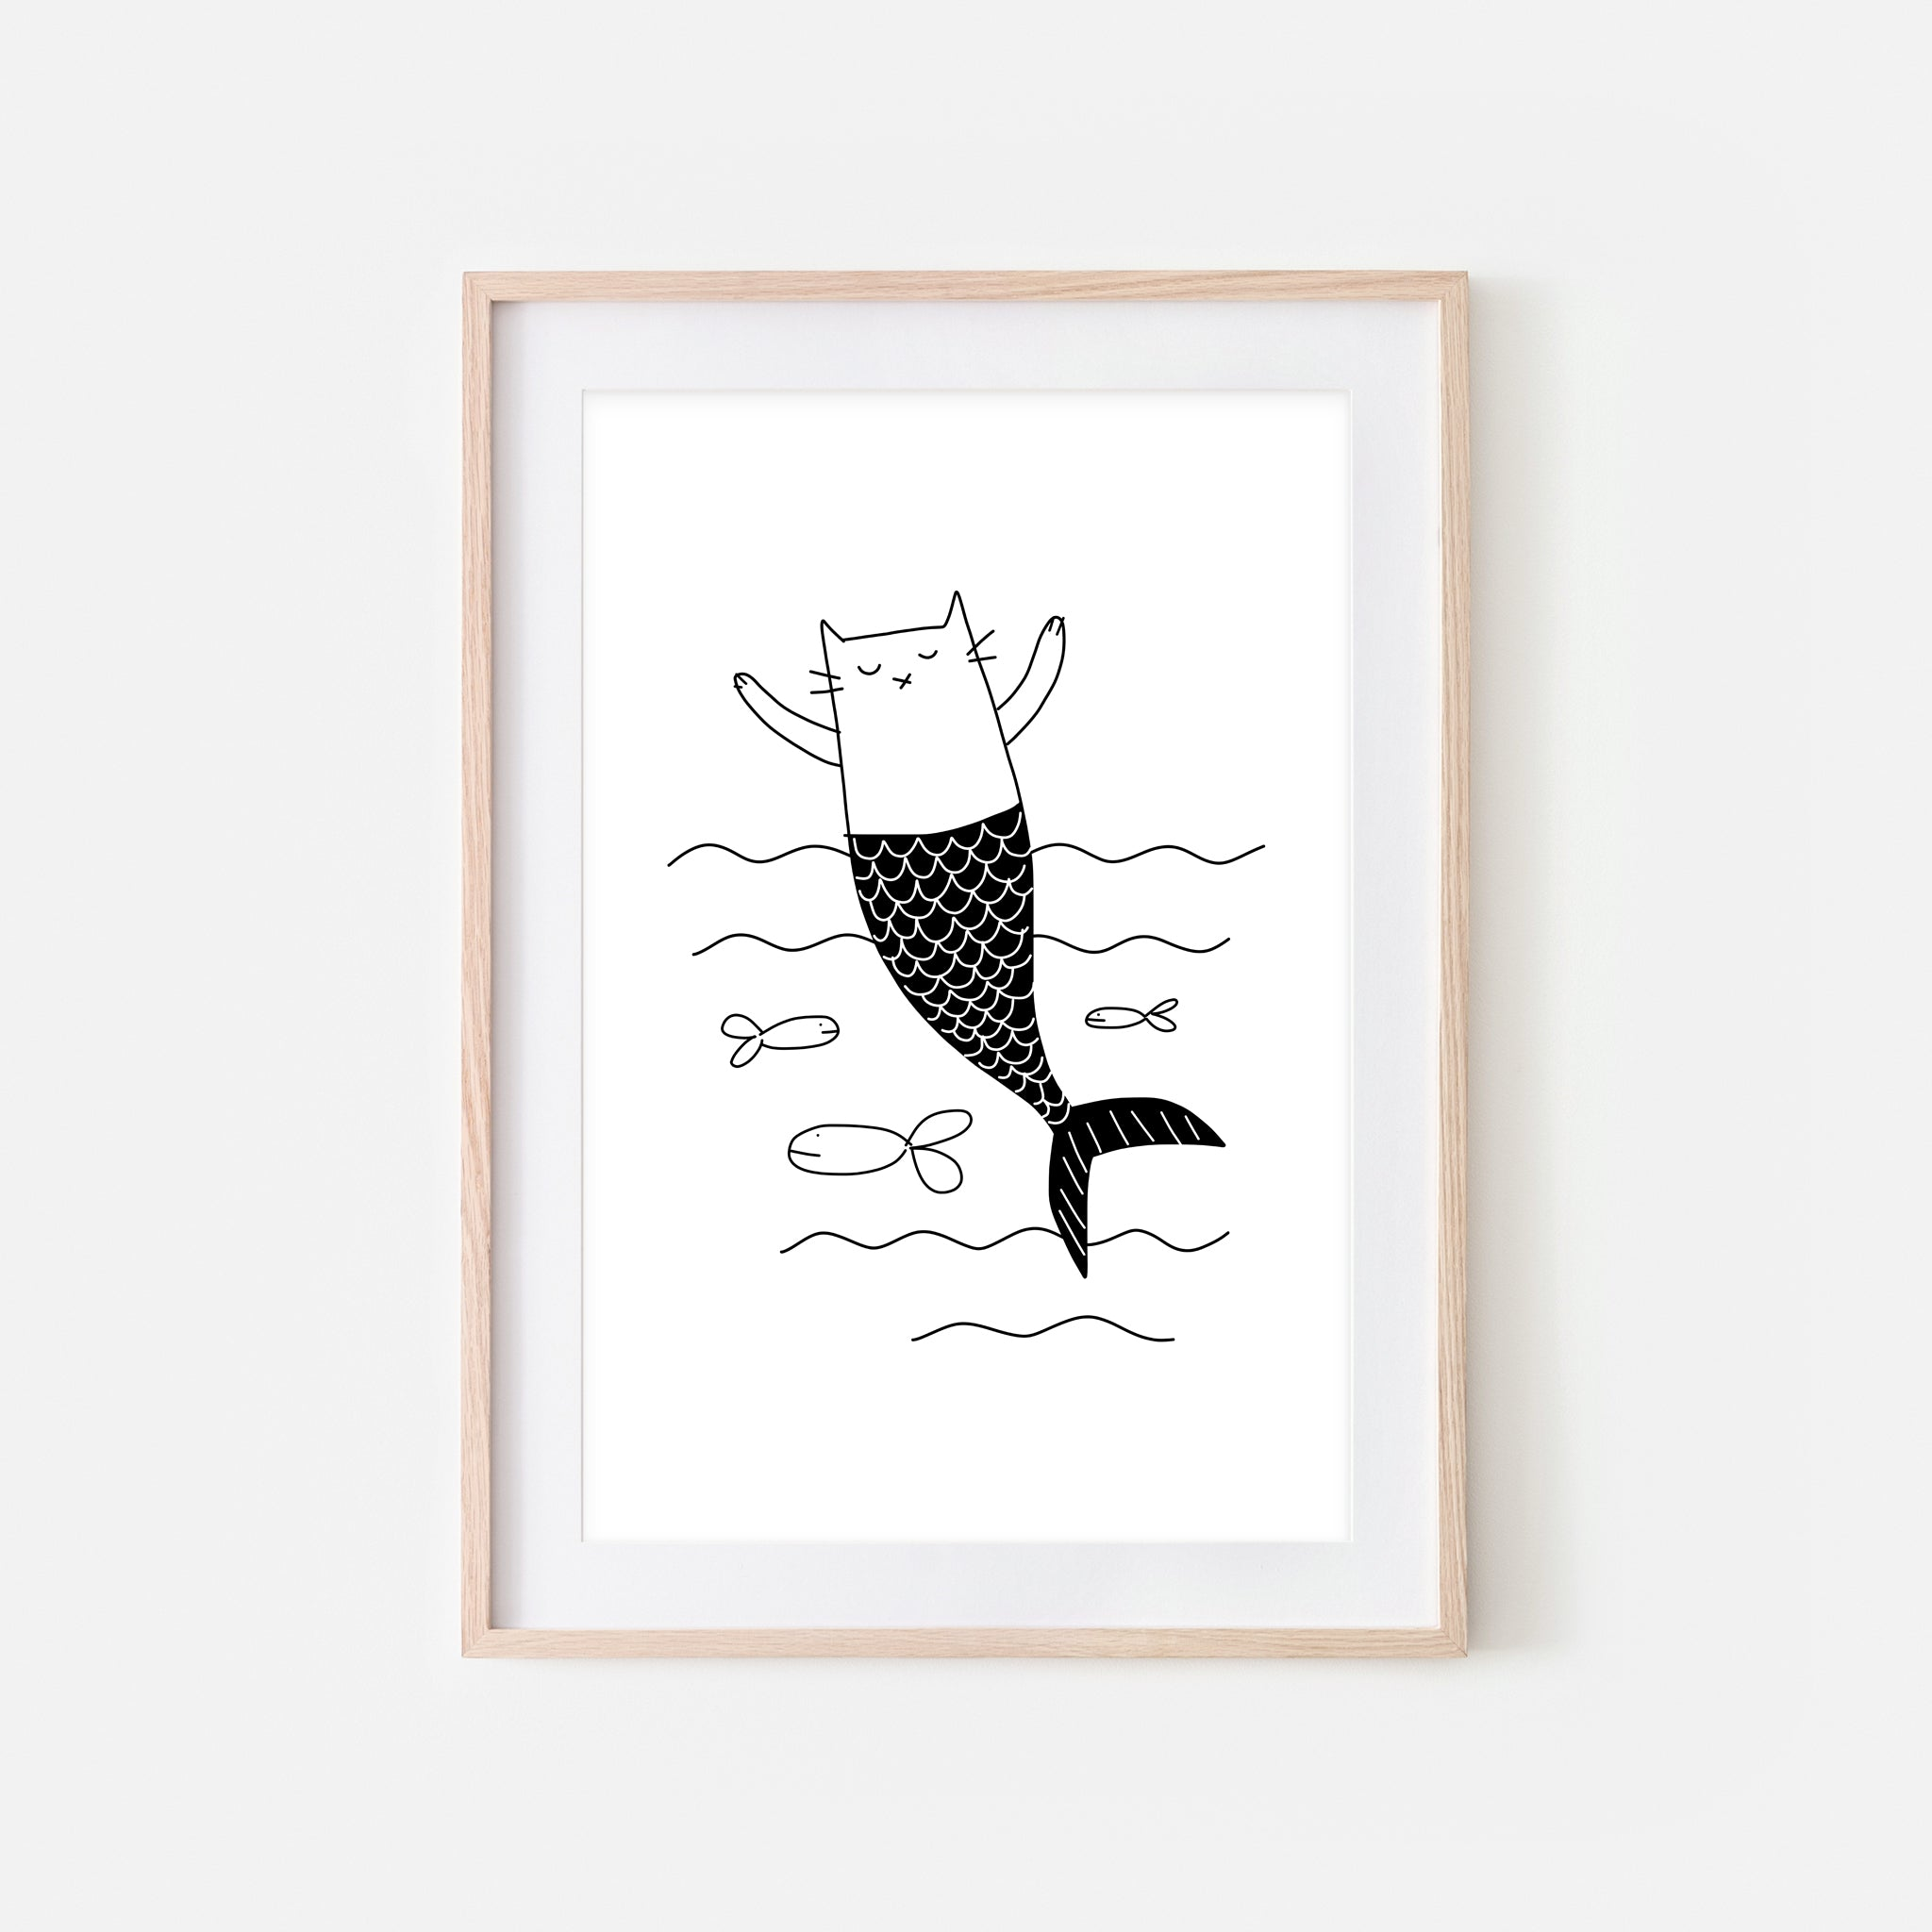 Mermaid Cat Wall Art - Black and White Line Drawing - Bathroom Kids Room Decor - Print, Poster or Printable Download